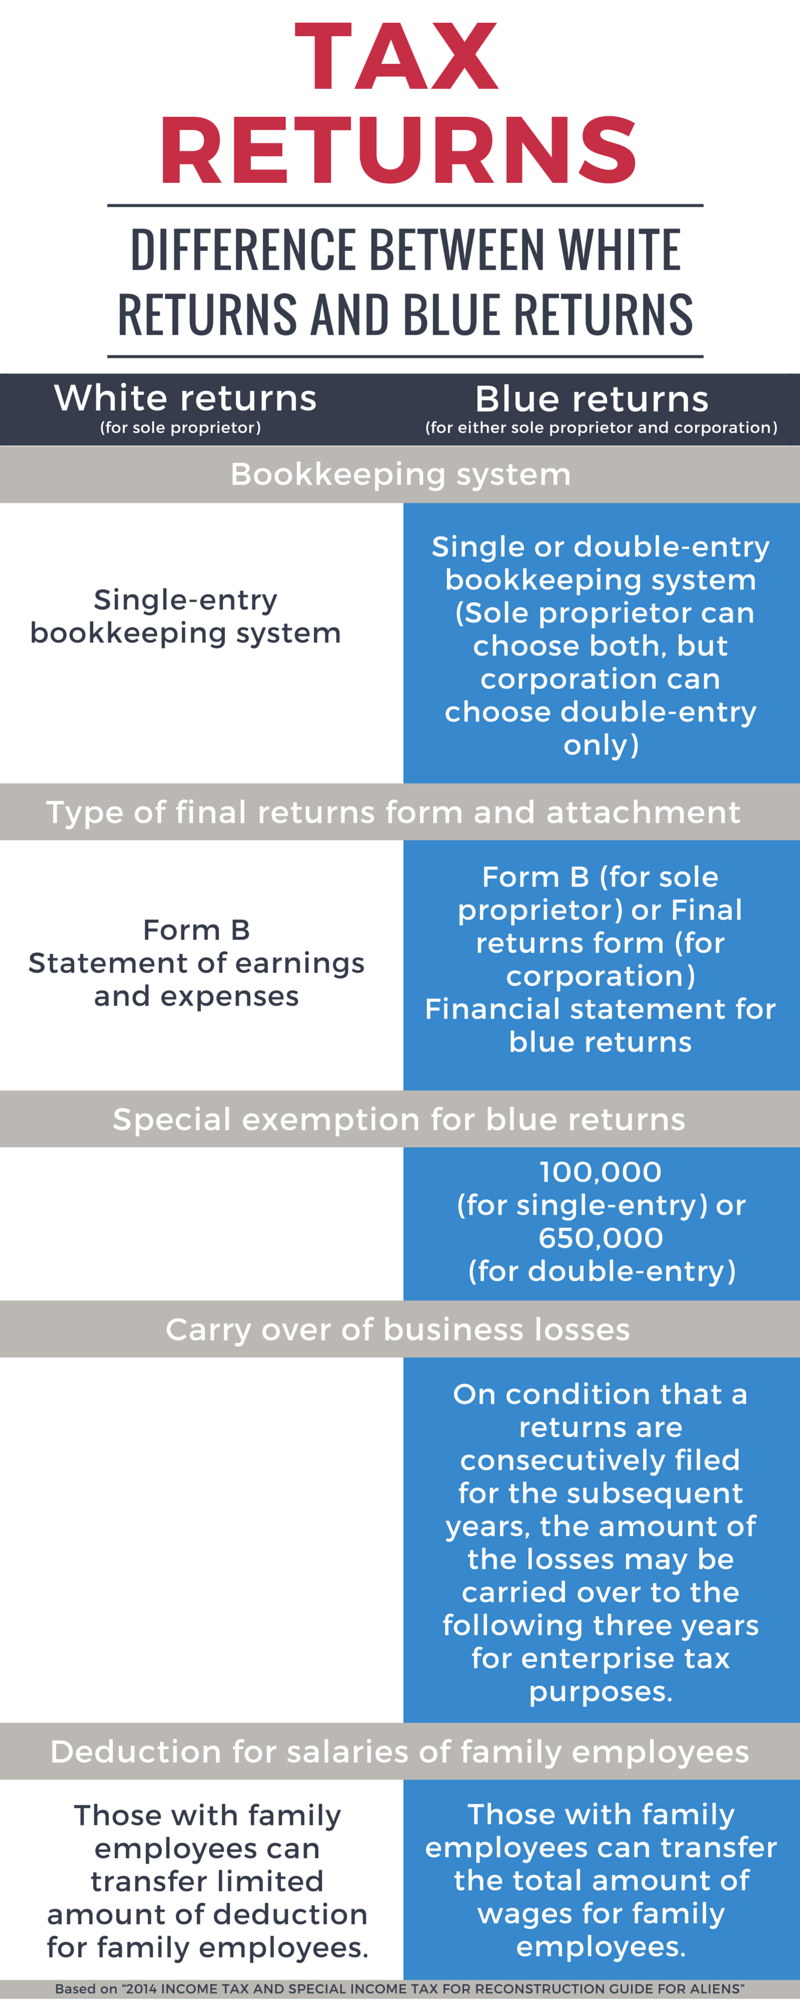 Difference between White Returns and Blue Returns